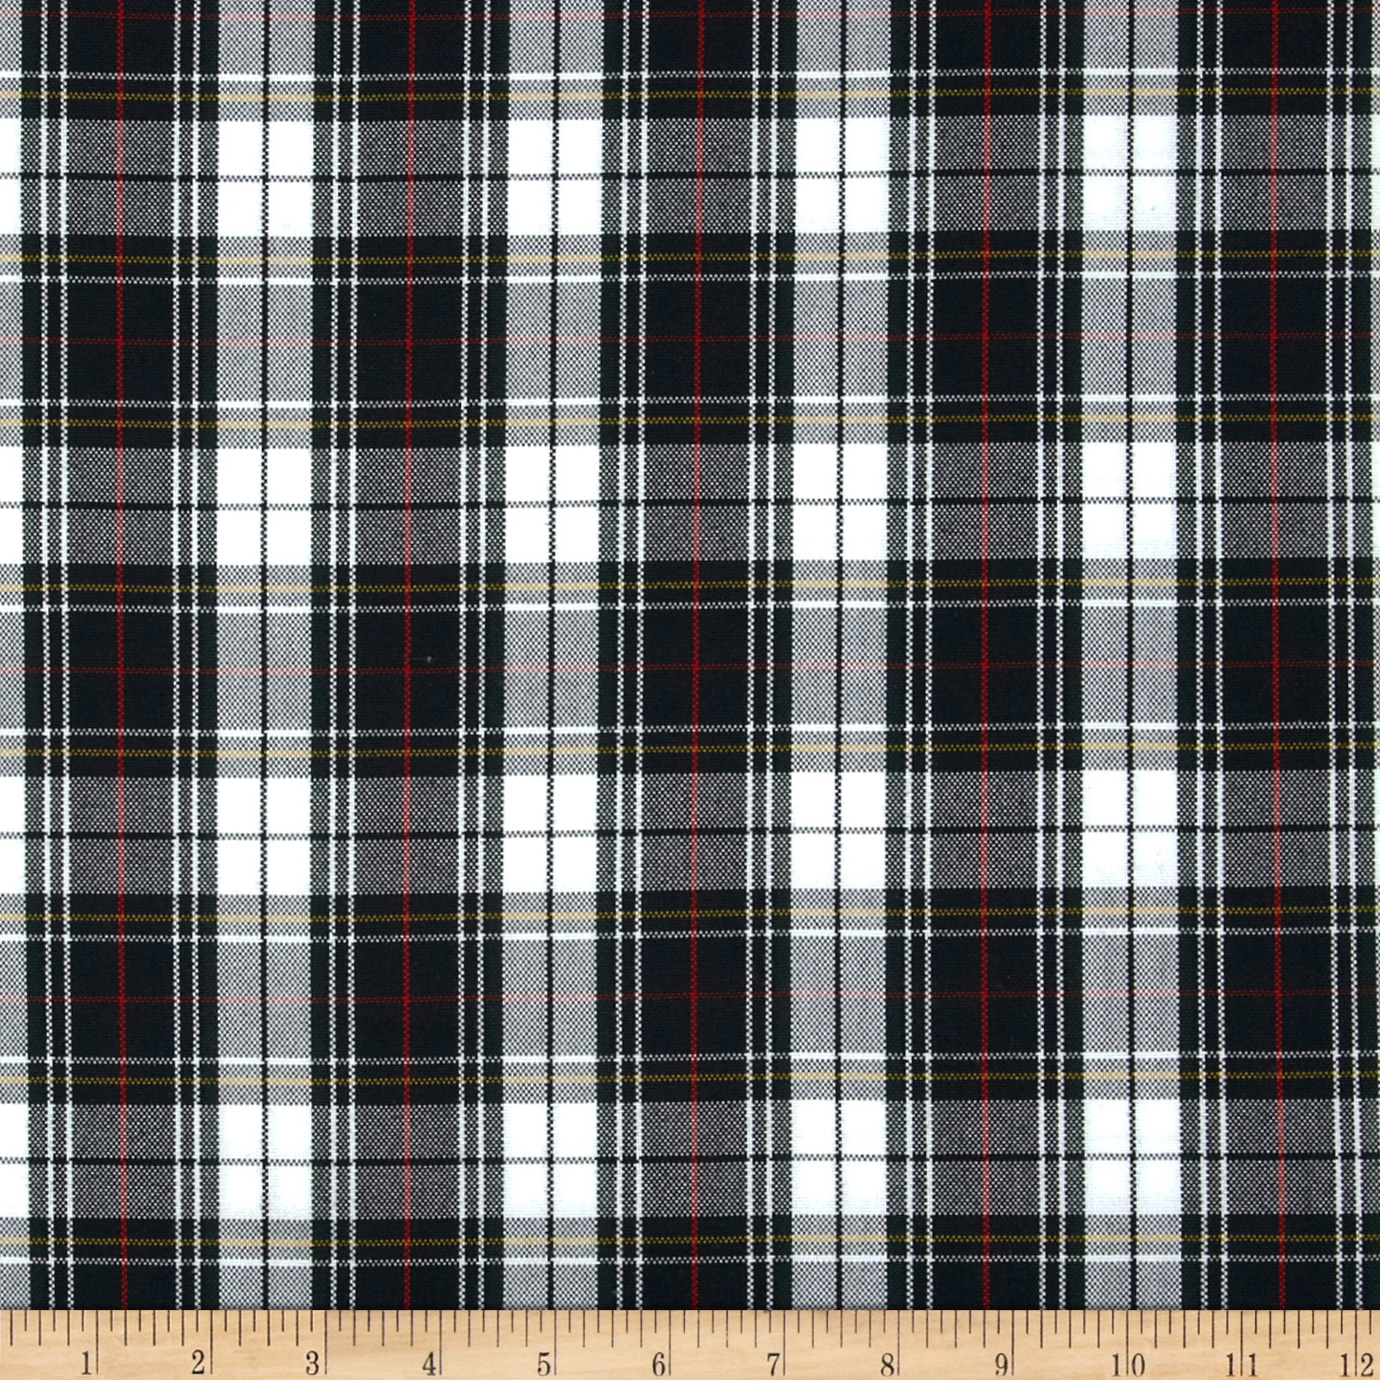 Polyester Uniform Plaid Black/White/Red Fabric by Carr in USA